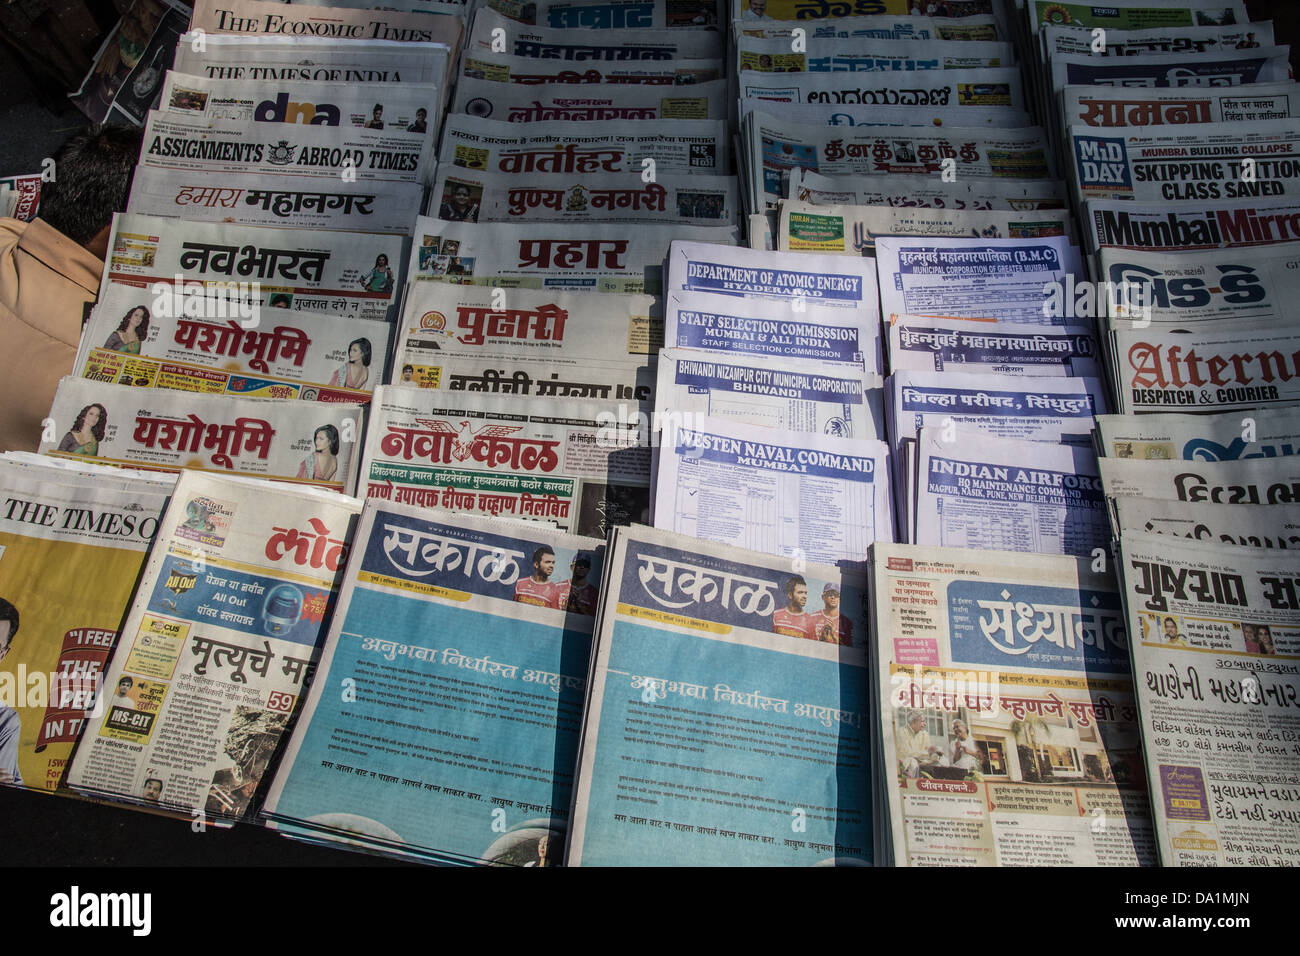 Newspapers in Mumbai, India Stock Photo: 57815821 - Alamy